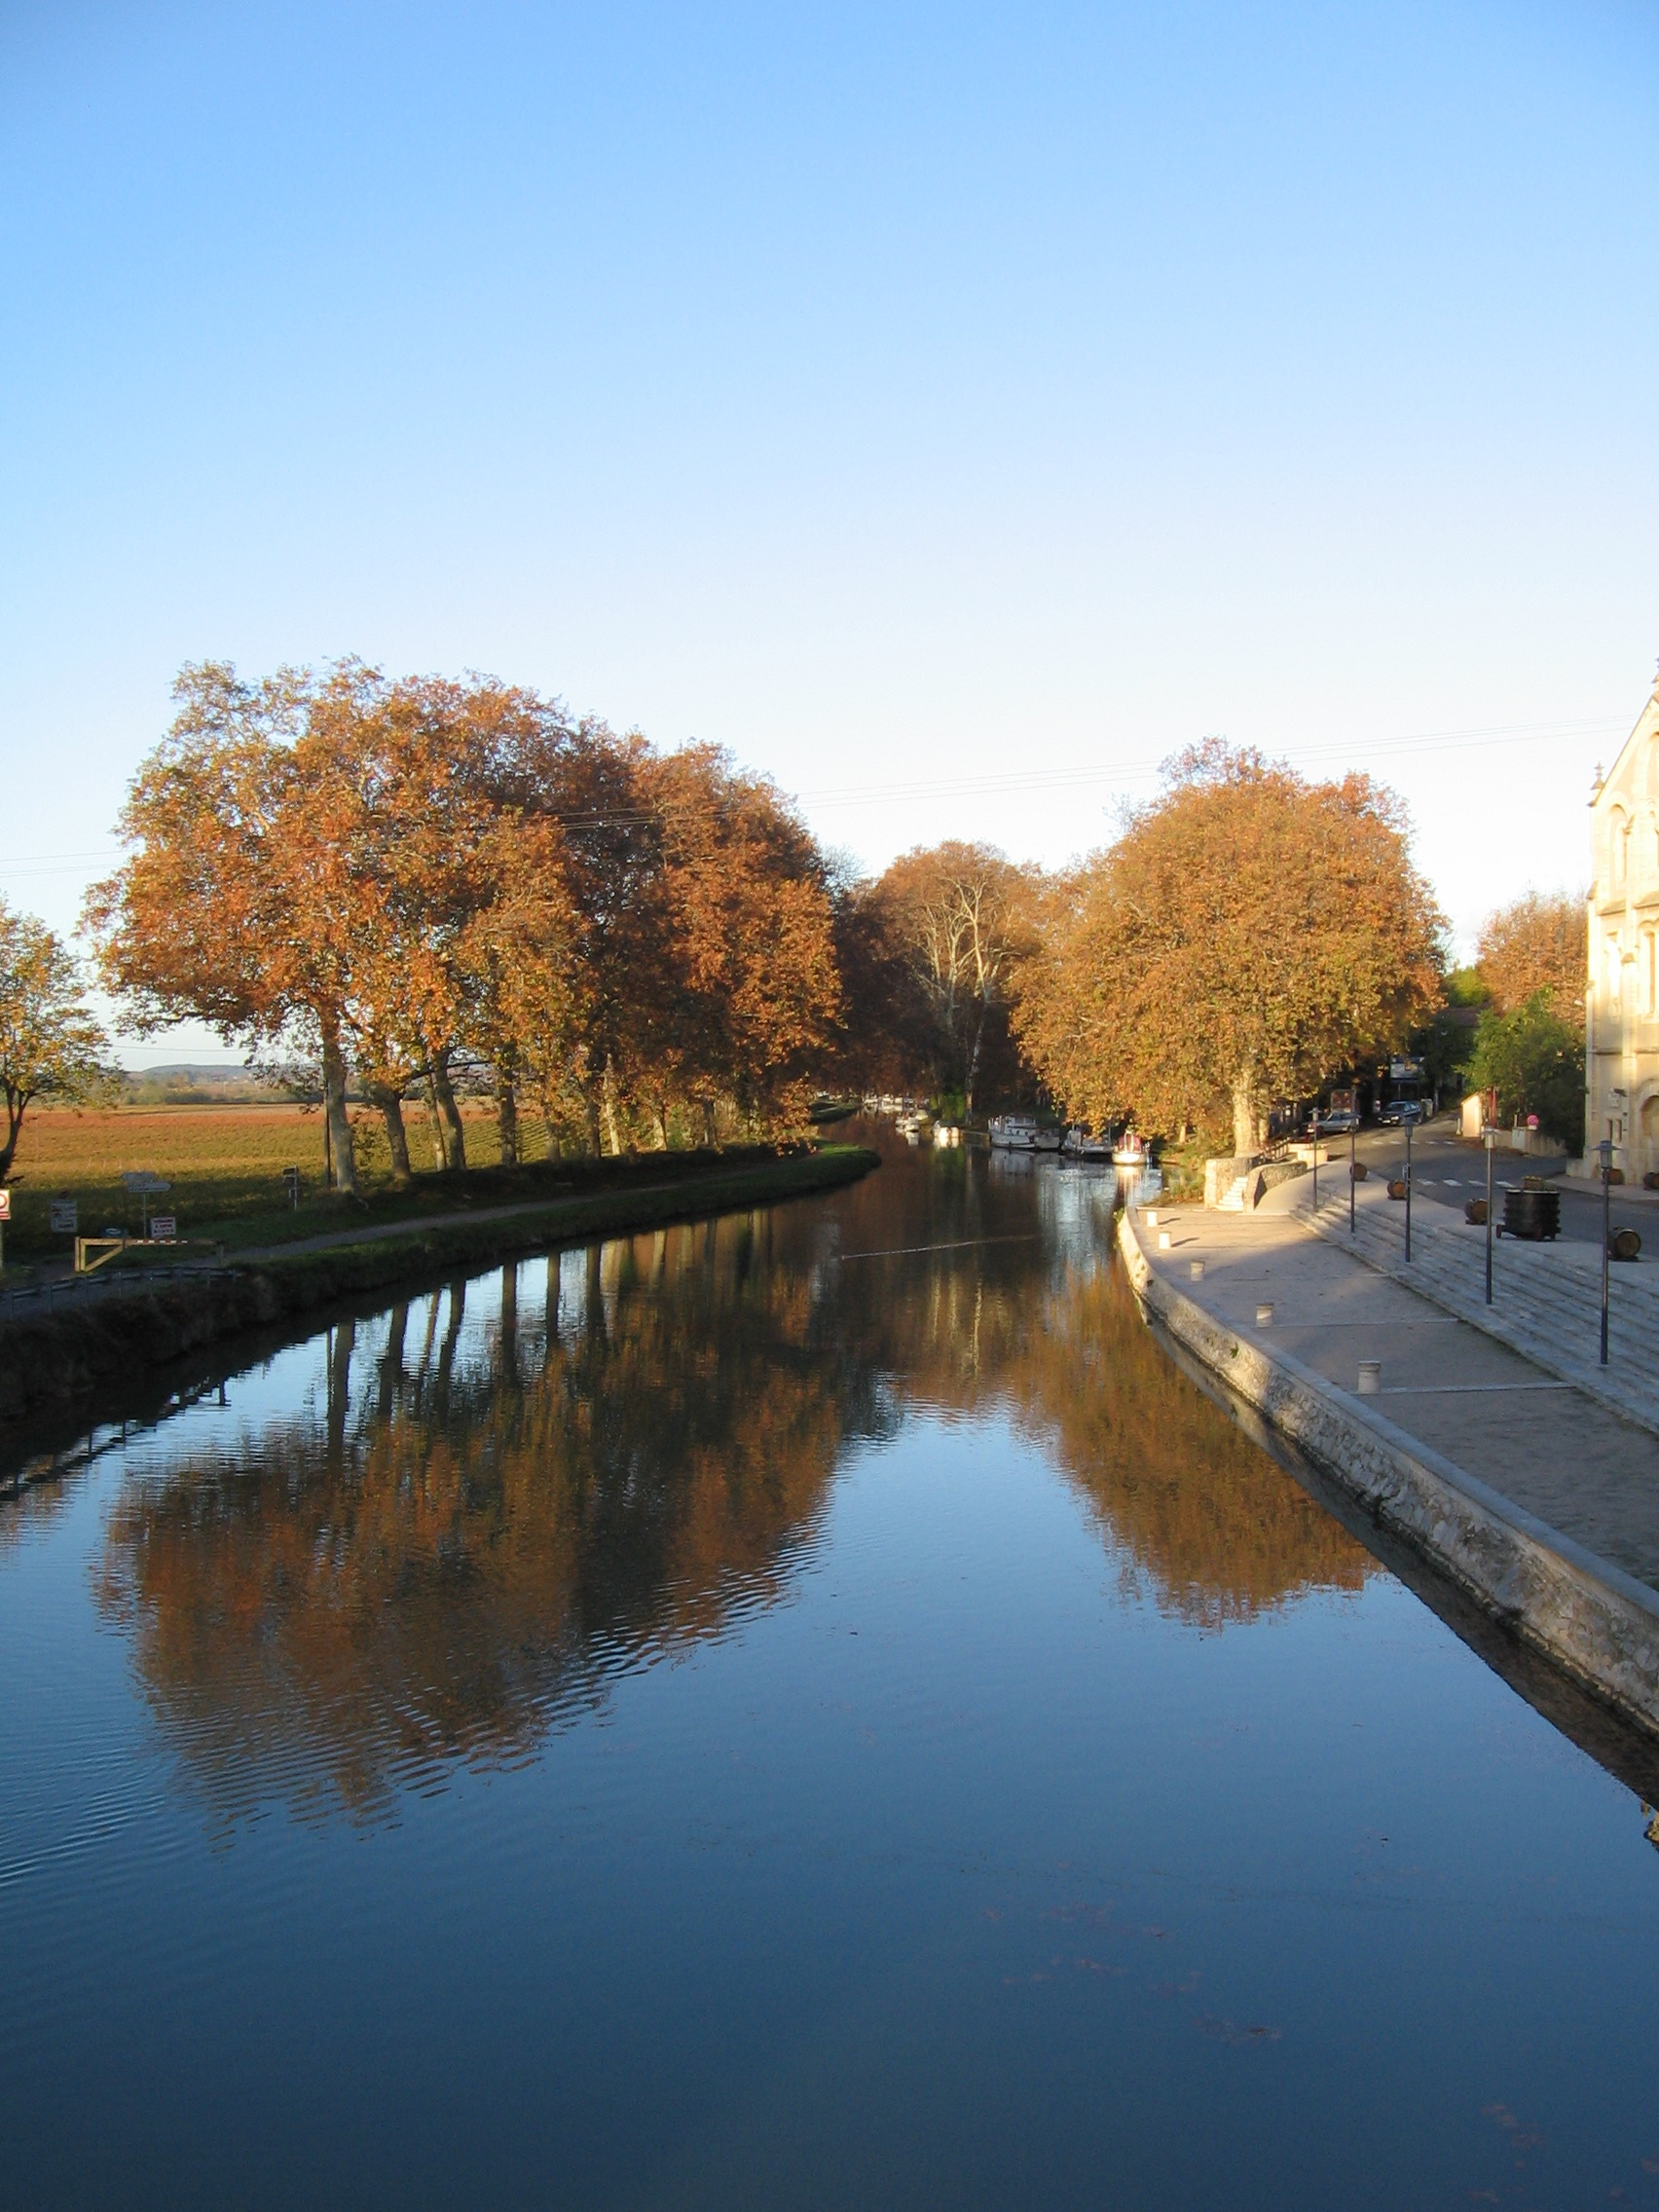 I arrived in Narbonne via ...